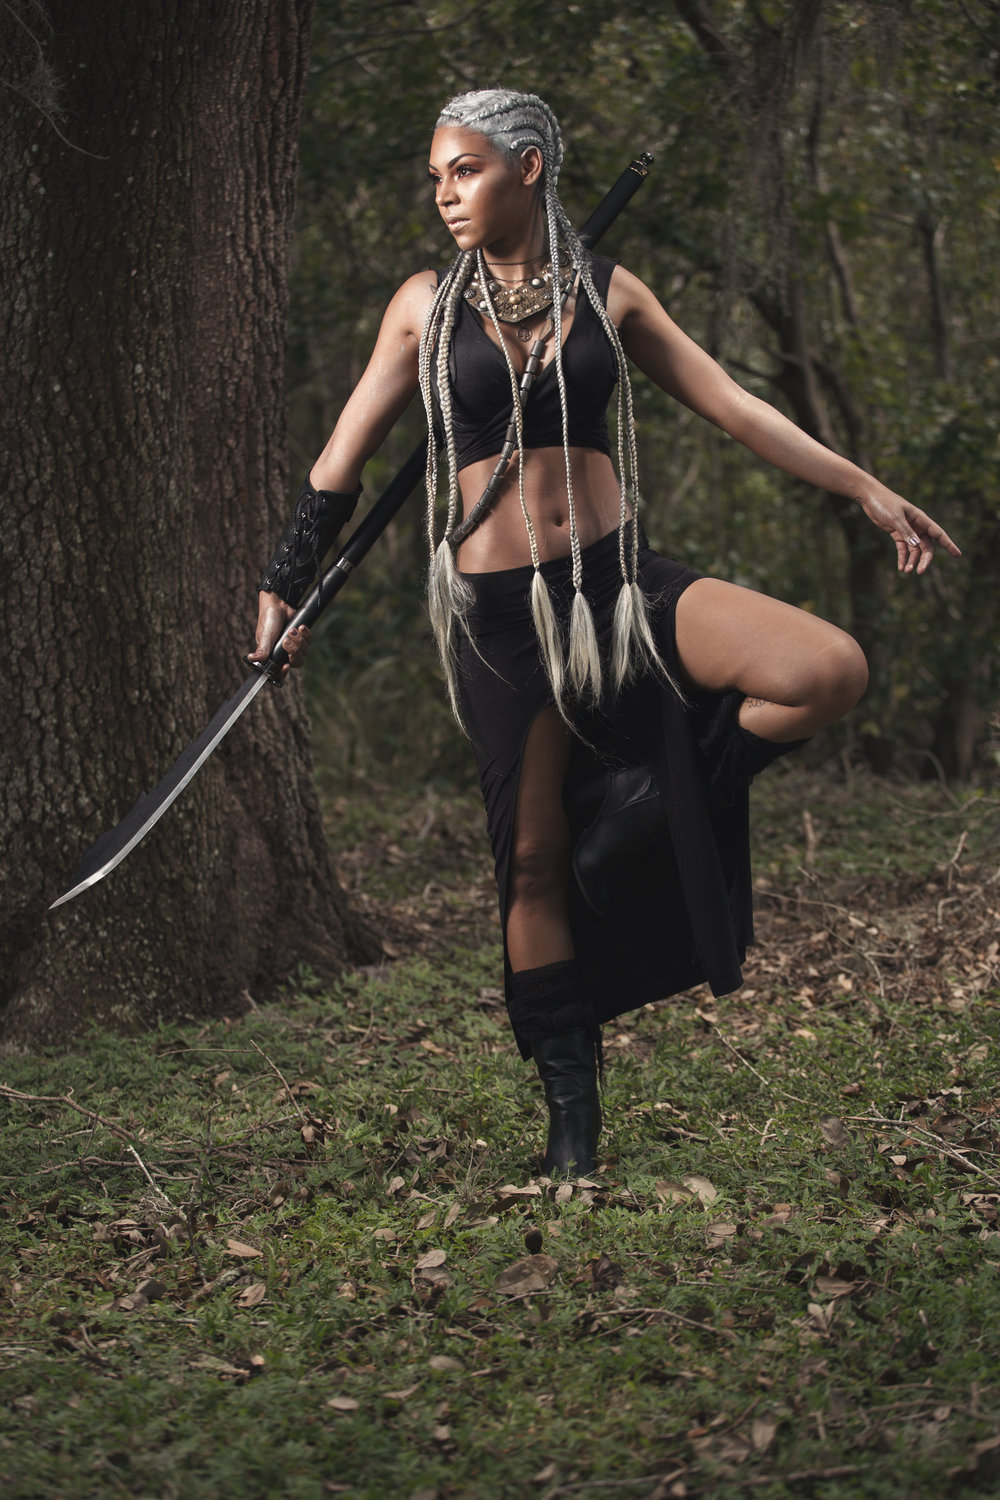 character-chamber-photography-warrior-female14.jpg